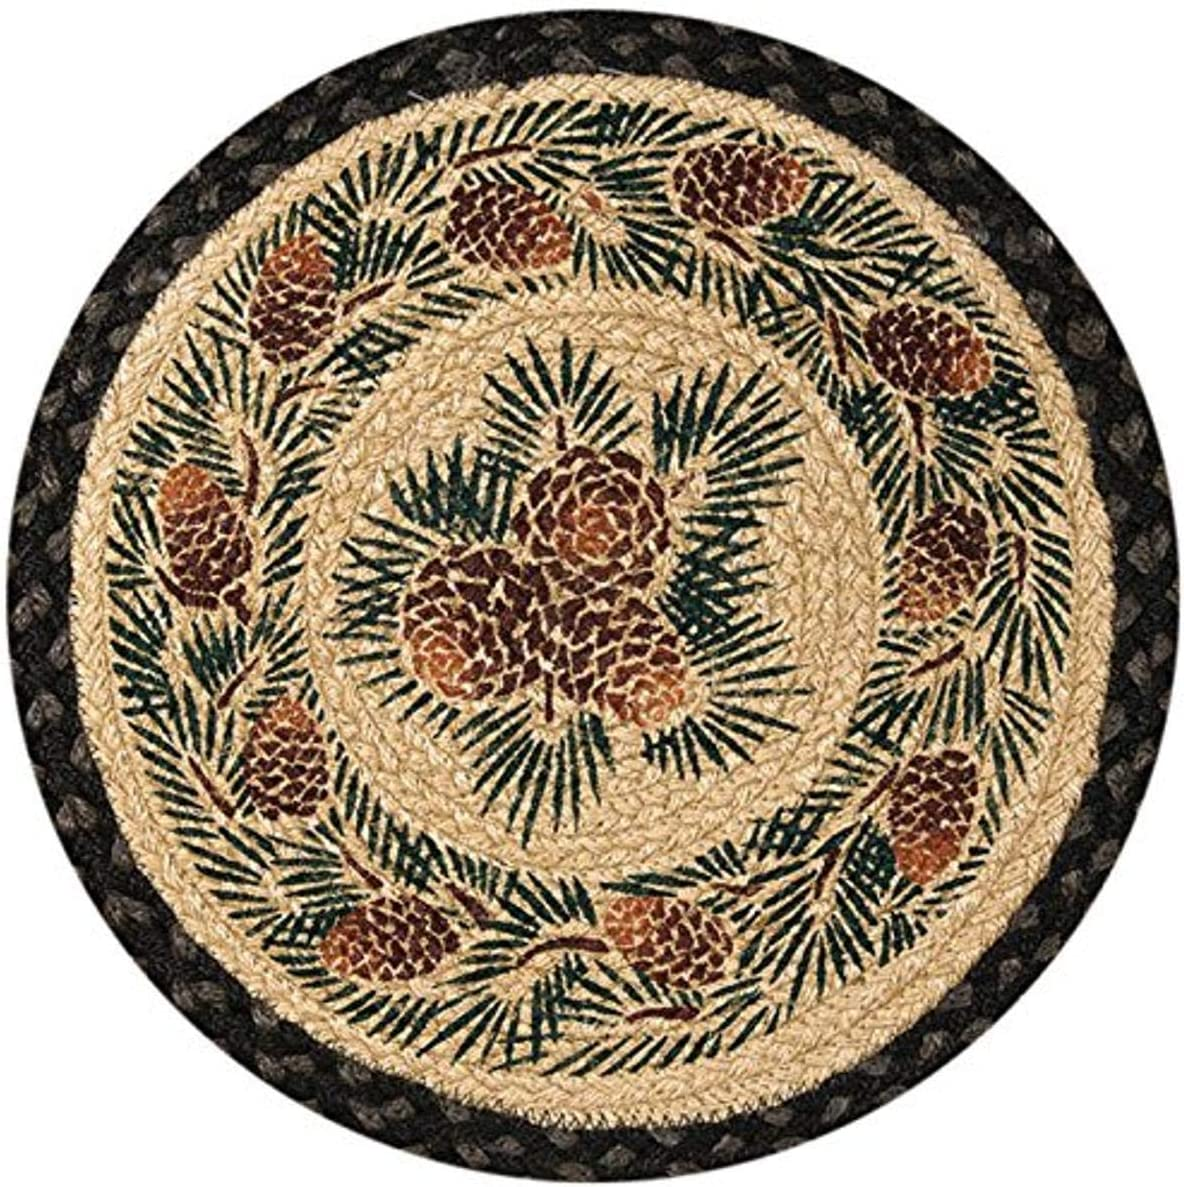 Earth Rugs 49-CH025A Chairpad, 15.5 , Charcoal